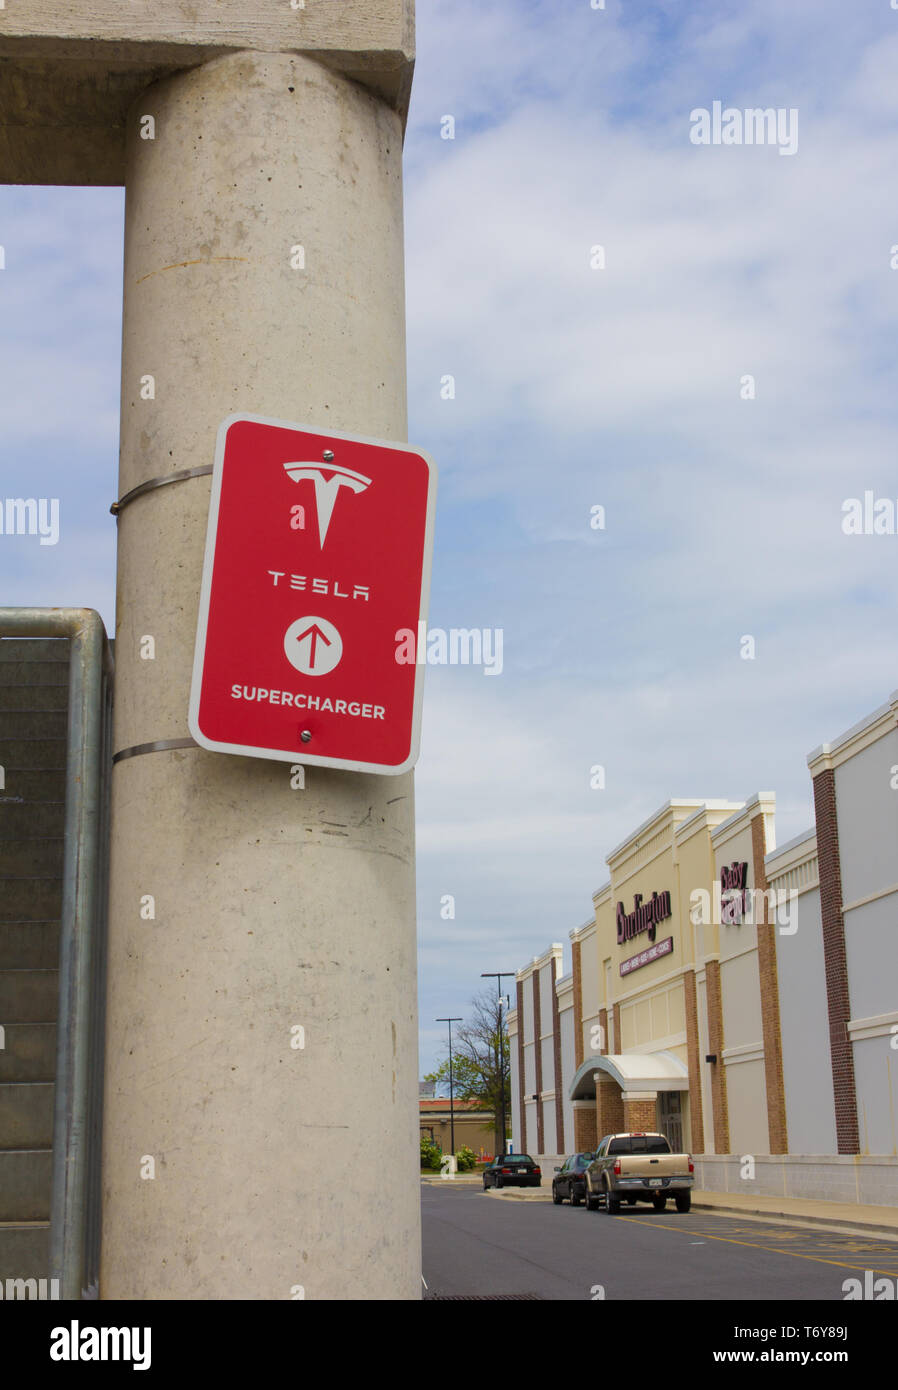 """In May 2019, it was announced that Tesla, Inc. co-founder/CEO Elon Musk was one of the winners of the 2019 Stephen Hawking Medal for Science Communication. Pictured in April 2019, in vertical orientation and with various stores in the background at the Towne Centre at Laurel shopping center/centre in Laurel, Maryland, USA, a red """"Tesla Supercharger"""" sign with logo on a pillar of the parking garage/multi-storey car park where charging stations are available for the California-based automotive company's electric vehicles. As of May 2019, Tesla had more than 1,440 Supercharger stations worldwide. Stock Photo"""